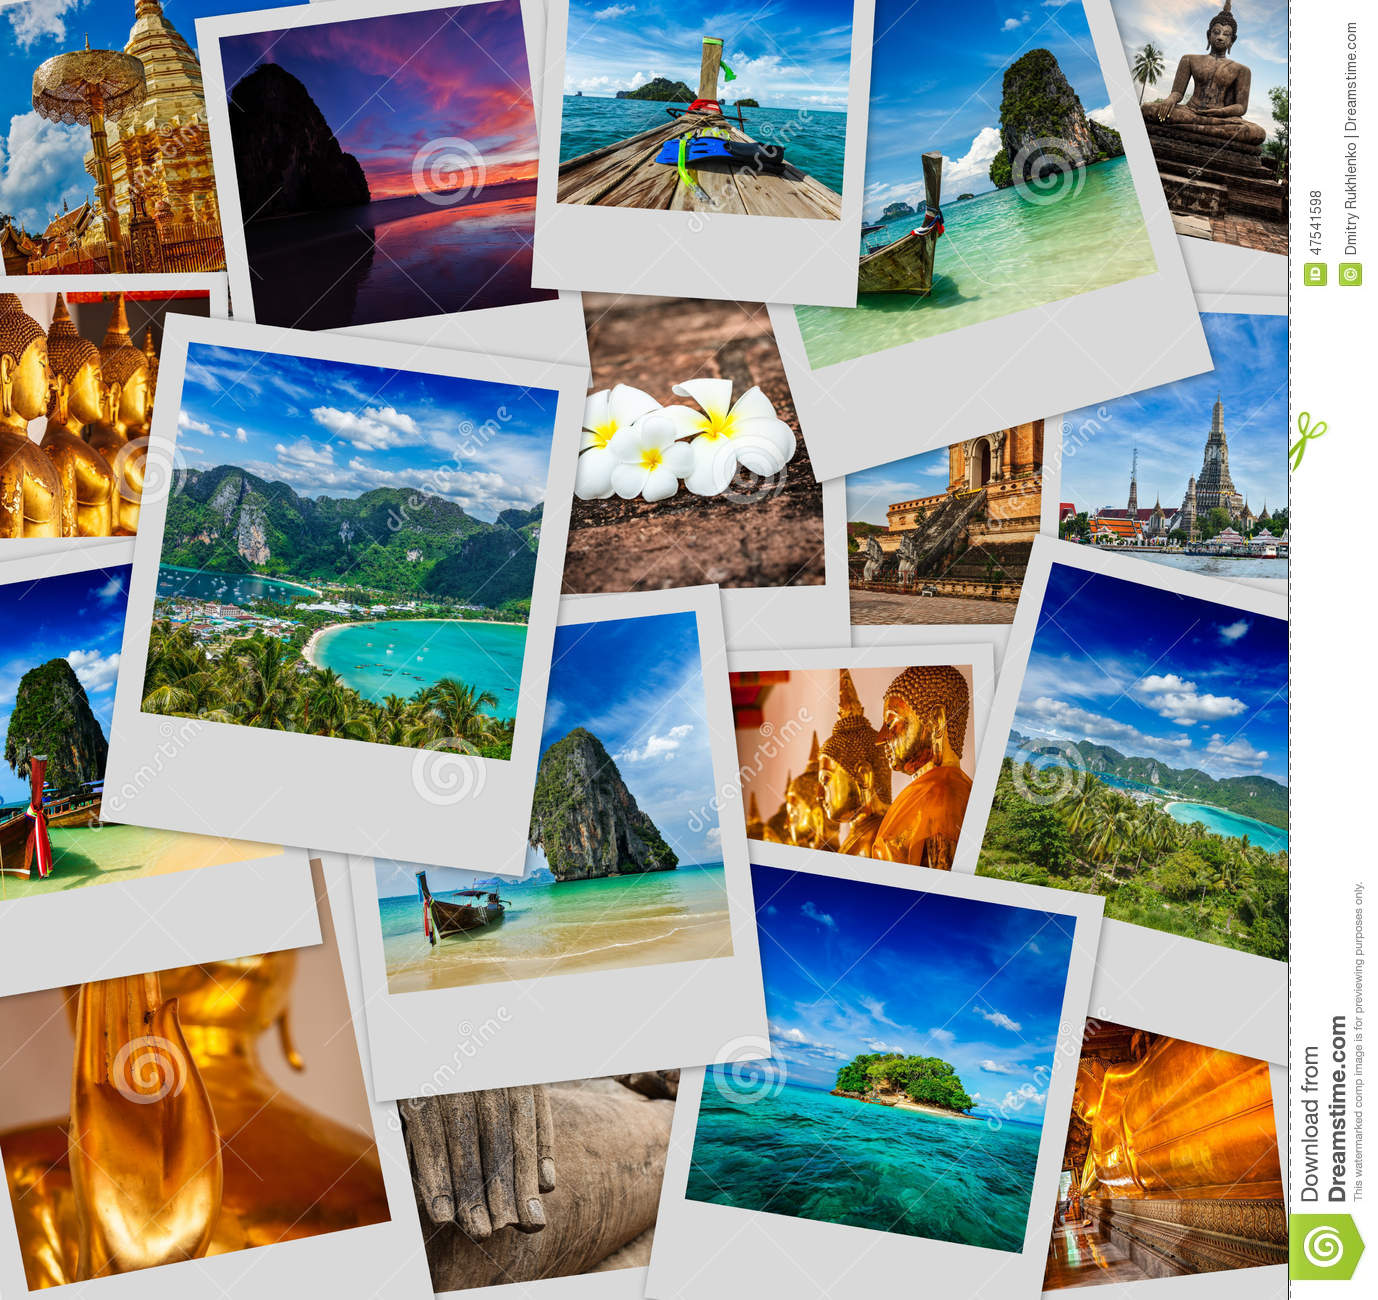 Collage of thailand images stock photo image of buddhism - Collage de fotos para dormitorios ...